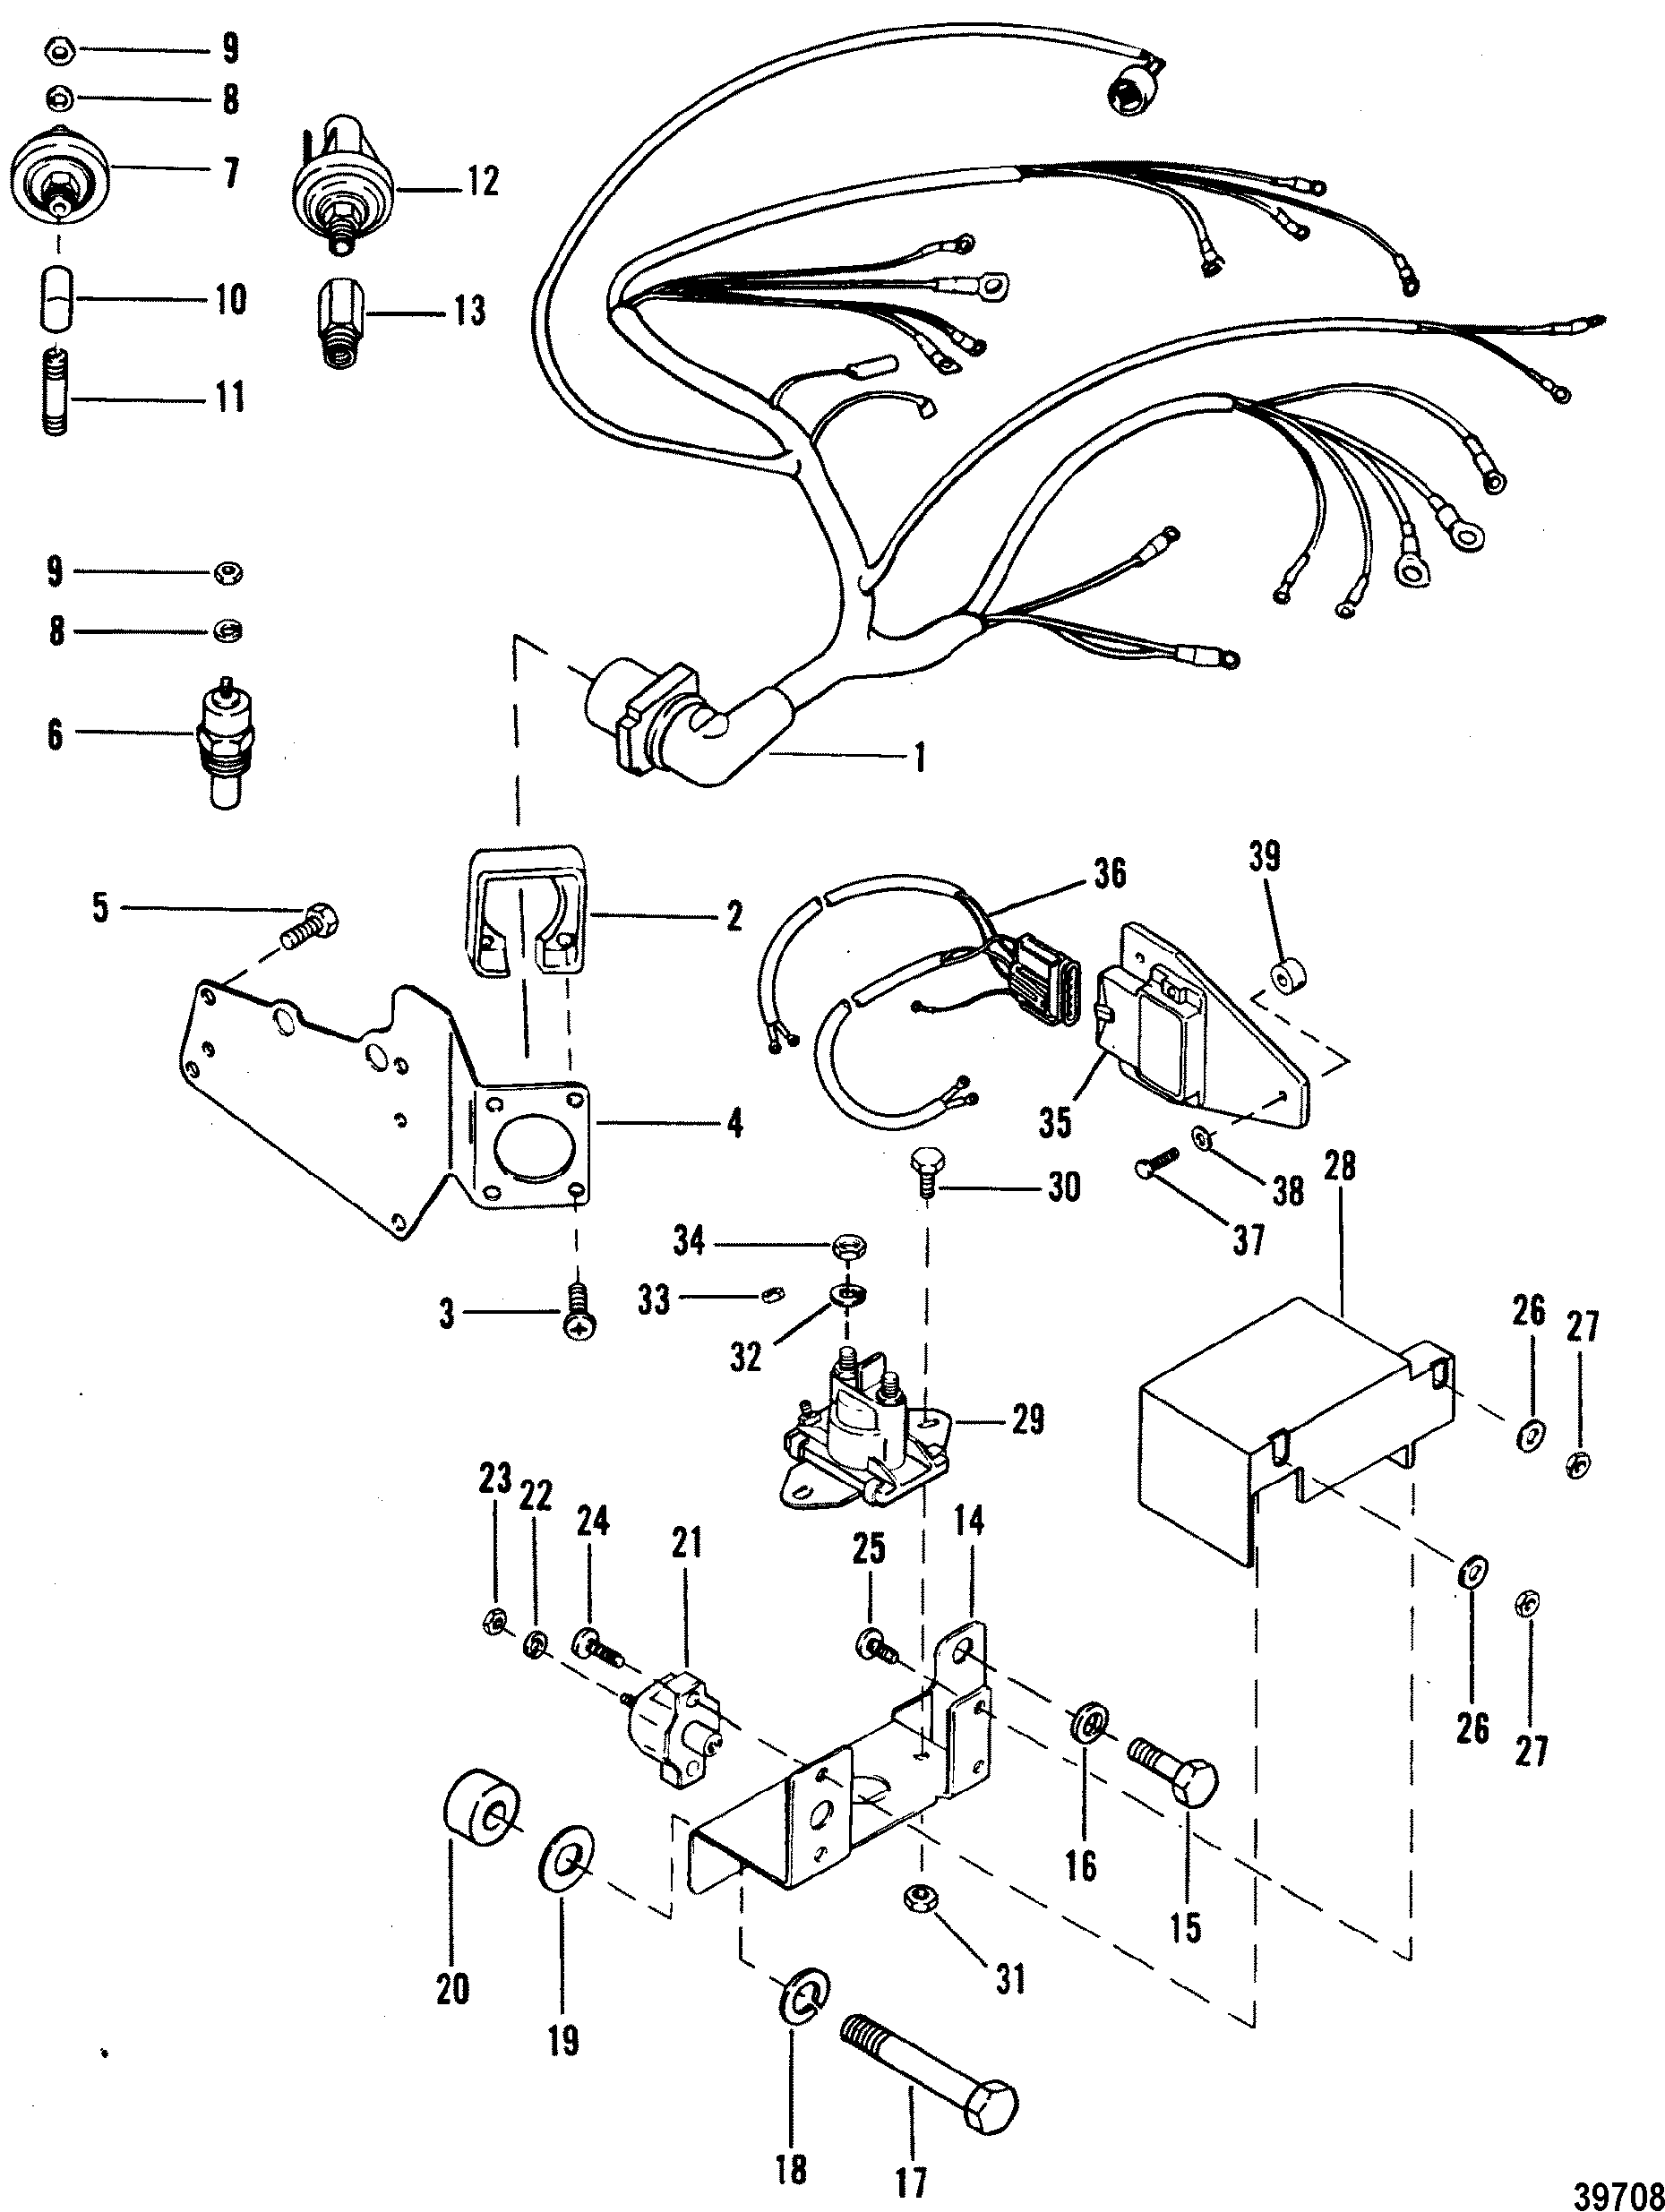 Wiring Harness And Electrical Components For Mercruiser 4 3l 4 3lx Alpha One Engine 262 Cid